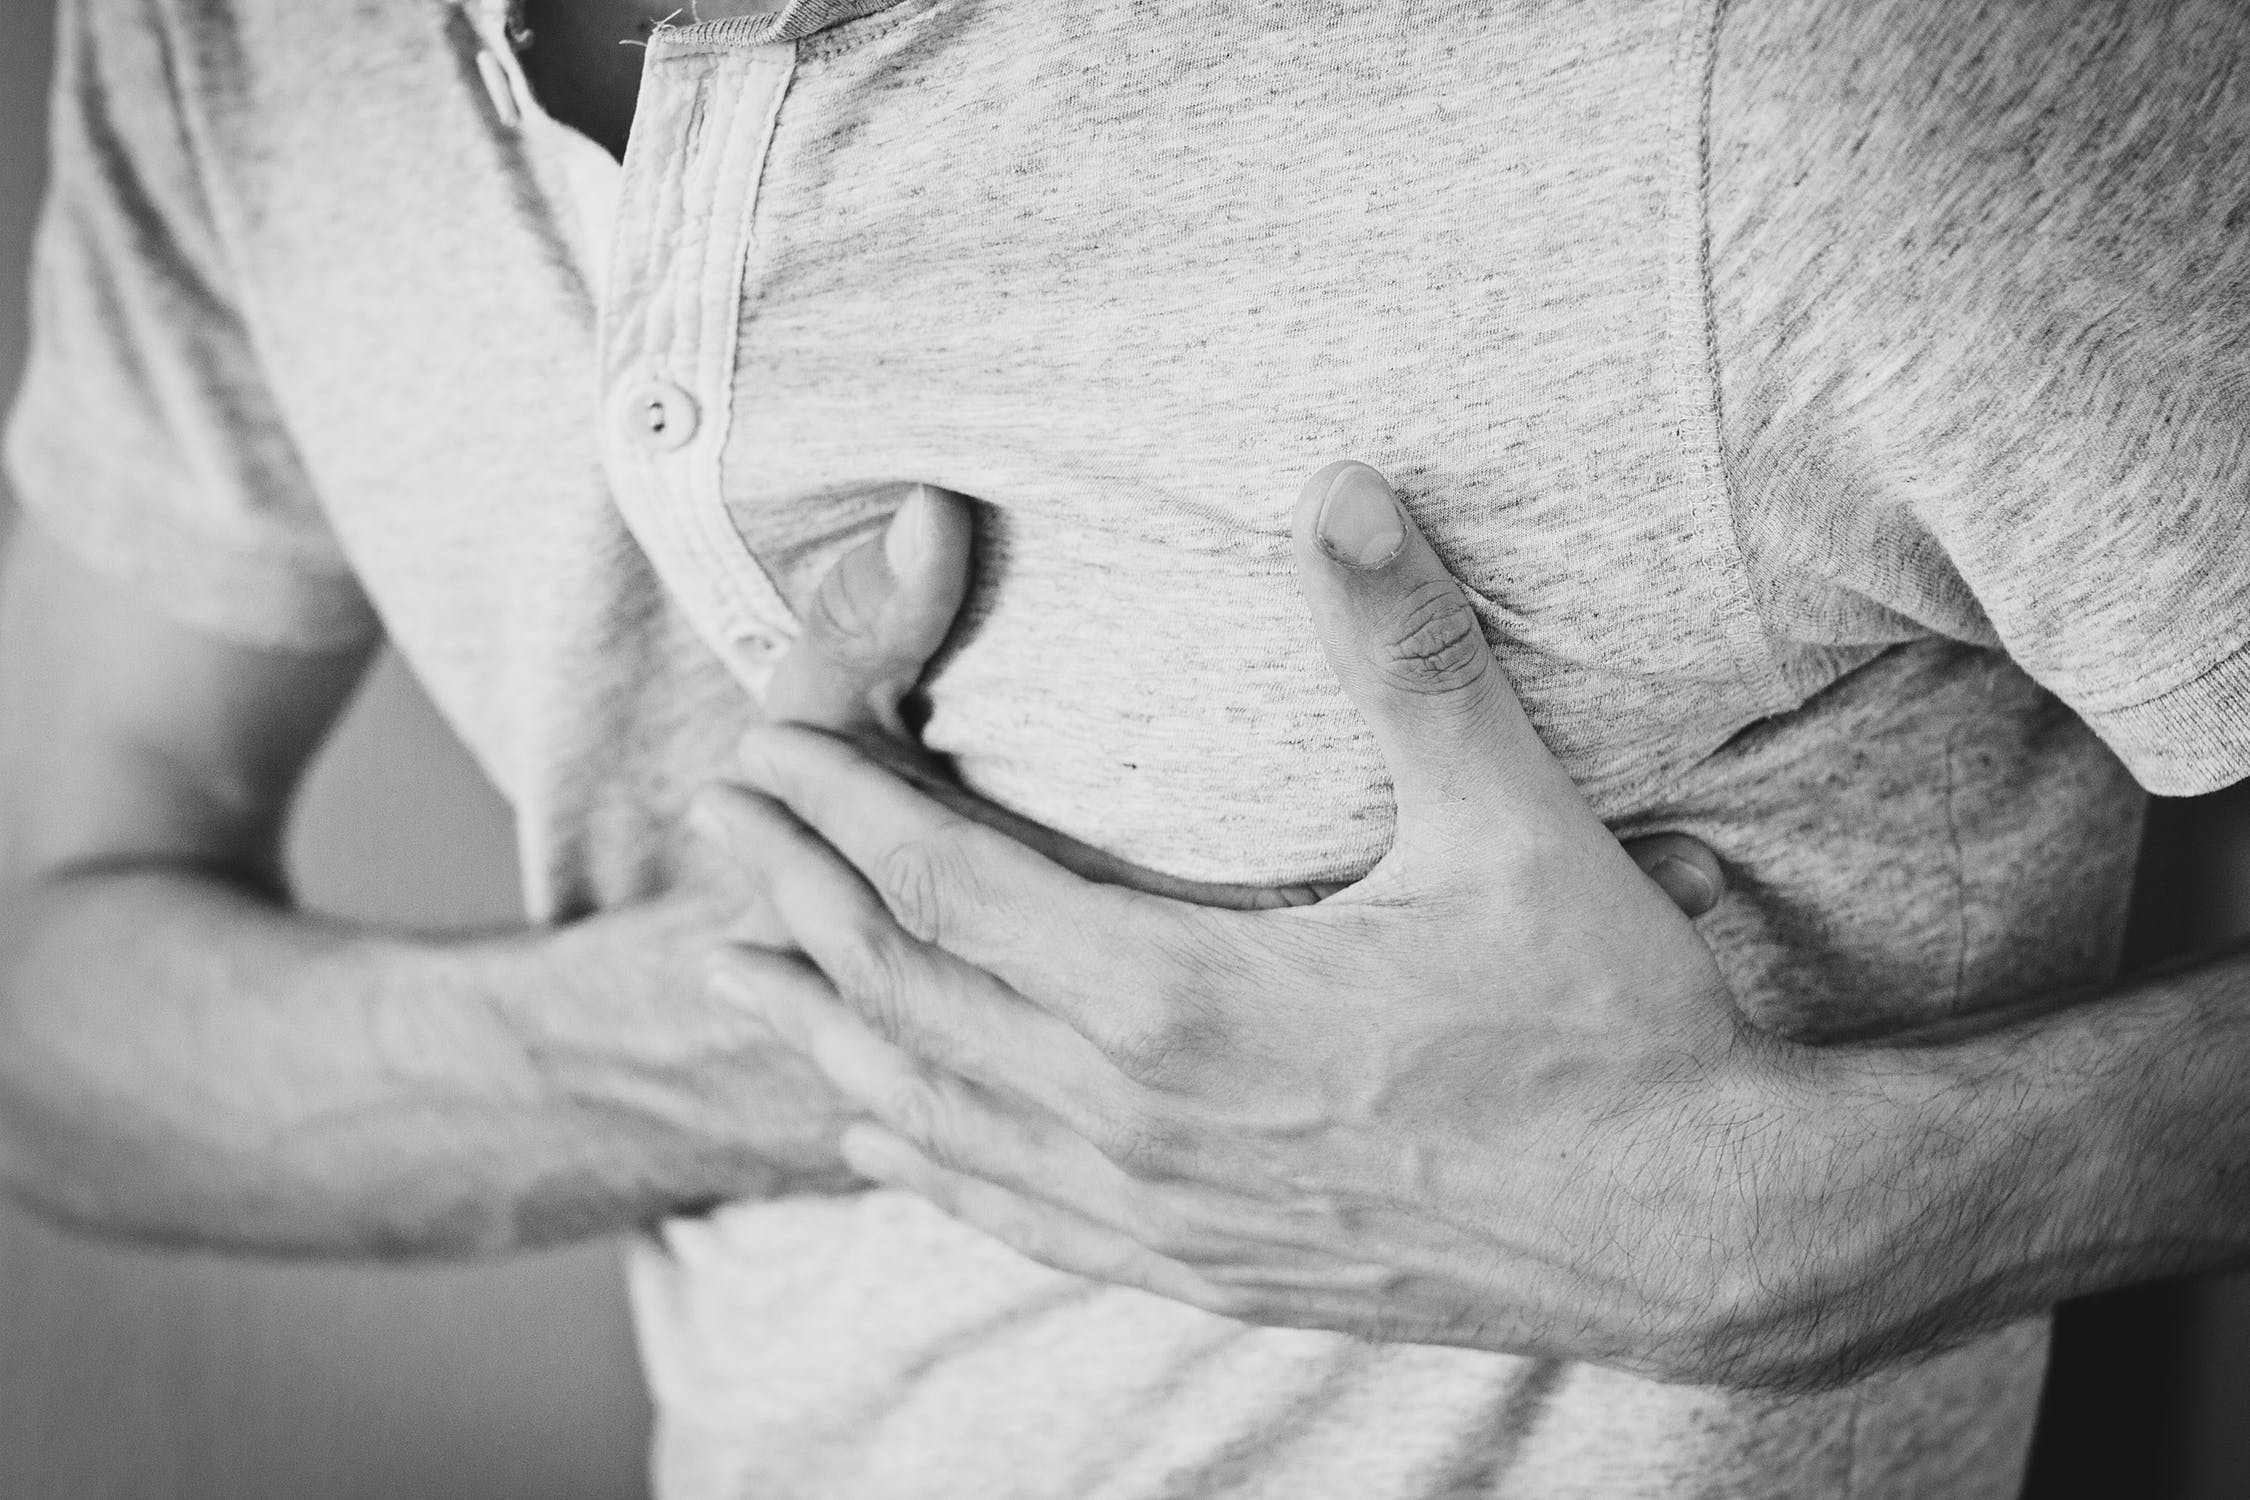 A Comprehensive Review of NSAID Cardiovascular Toxicity